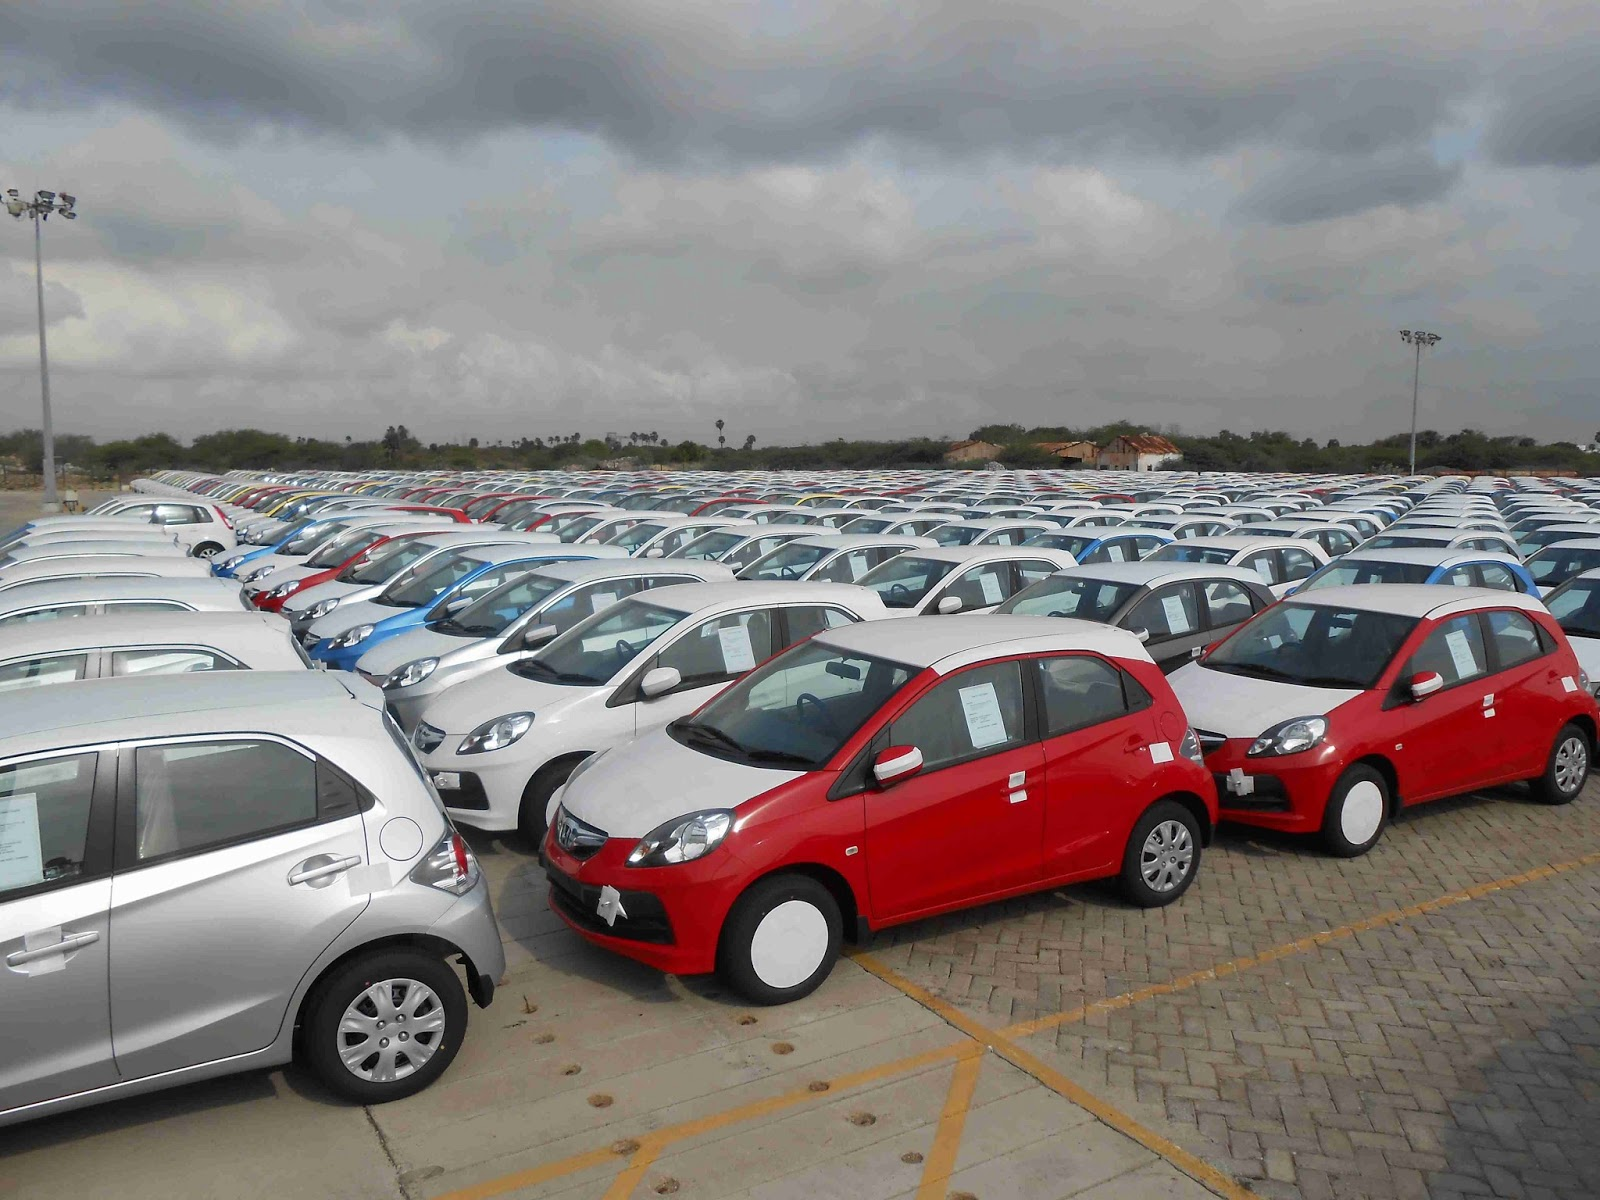 andaman saravanan andaman saravanan page  on this day paramount shipping services custom cleared for exports of 175 cbus of honda brio to south africa which were flagged off by mr m a